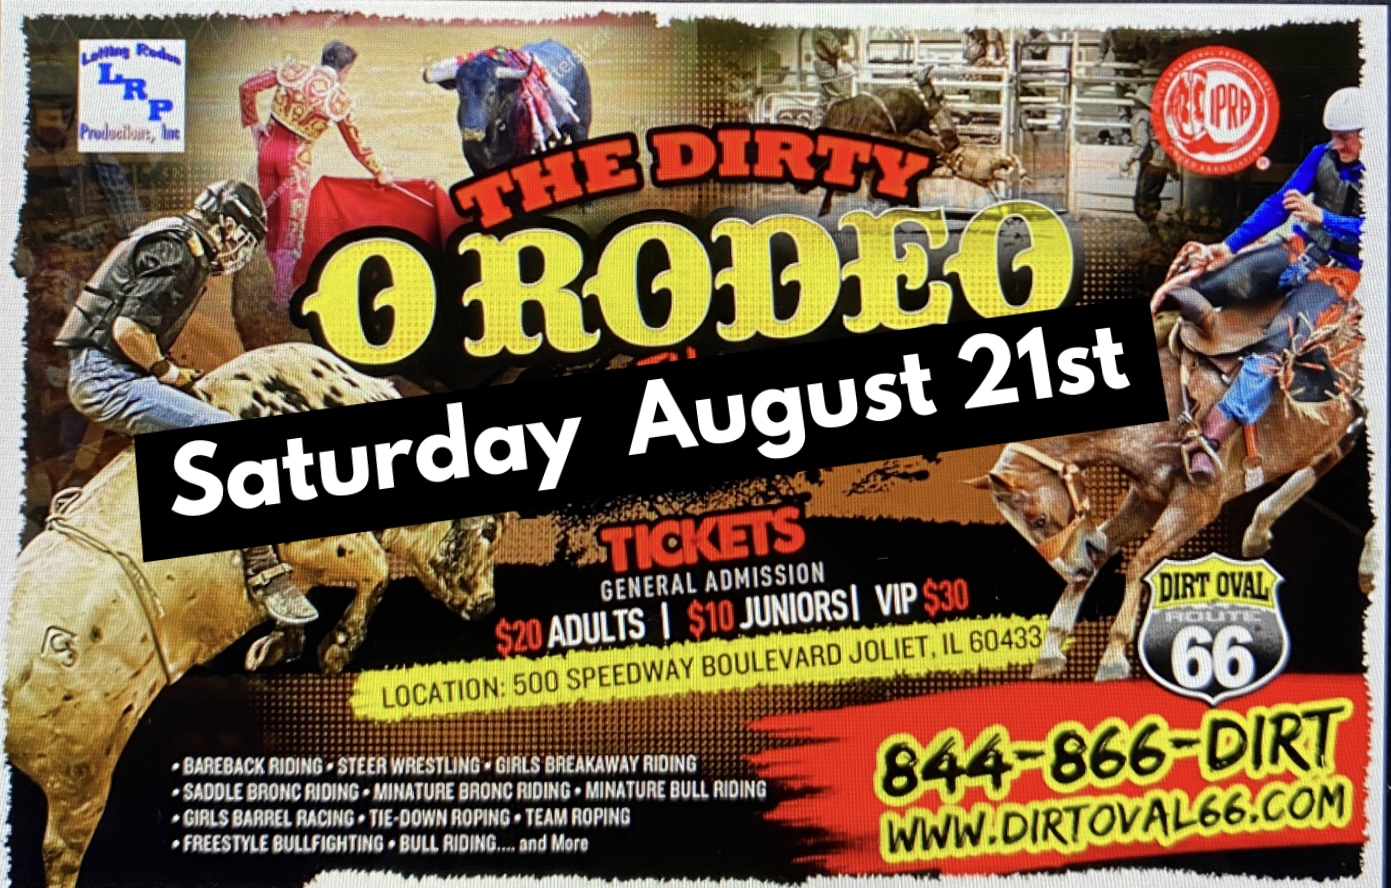 Dirty O Rodeo.... Bull Riding, Bronc Riding, Girls Barrel Racing, Bareback Riding, Tie Down Roping, Miniature Bull Riding, Miniature Bronc Riding, Bull Fighting and More!